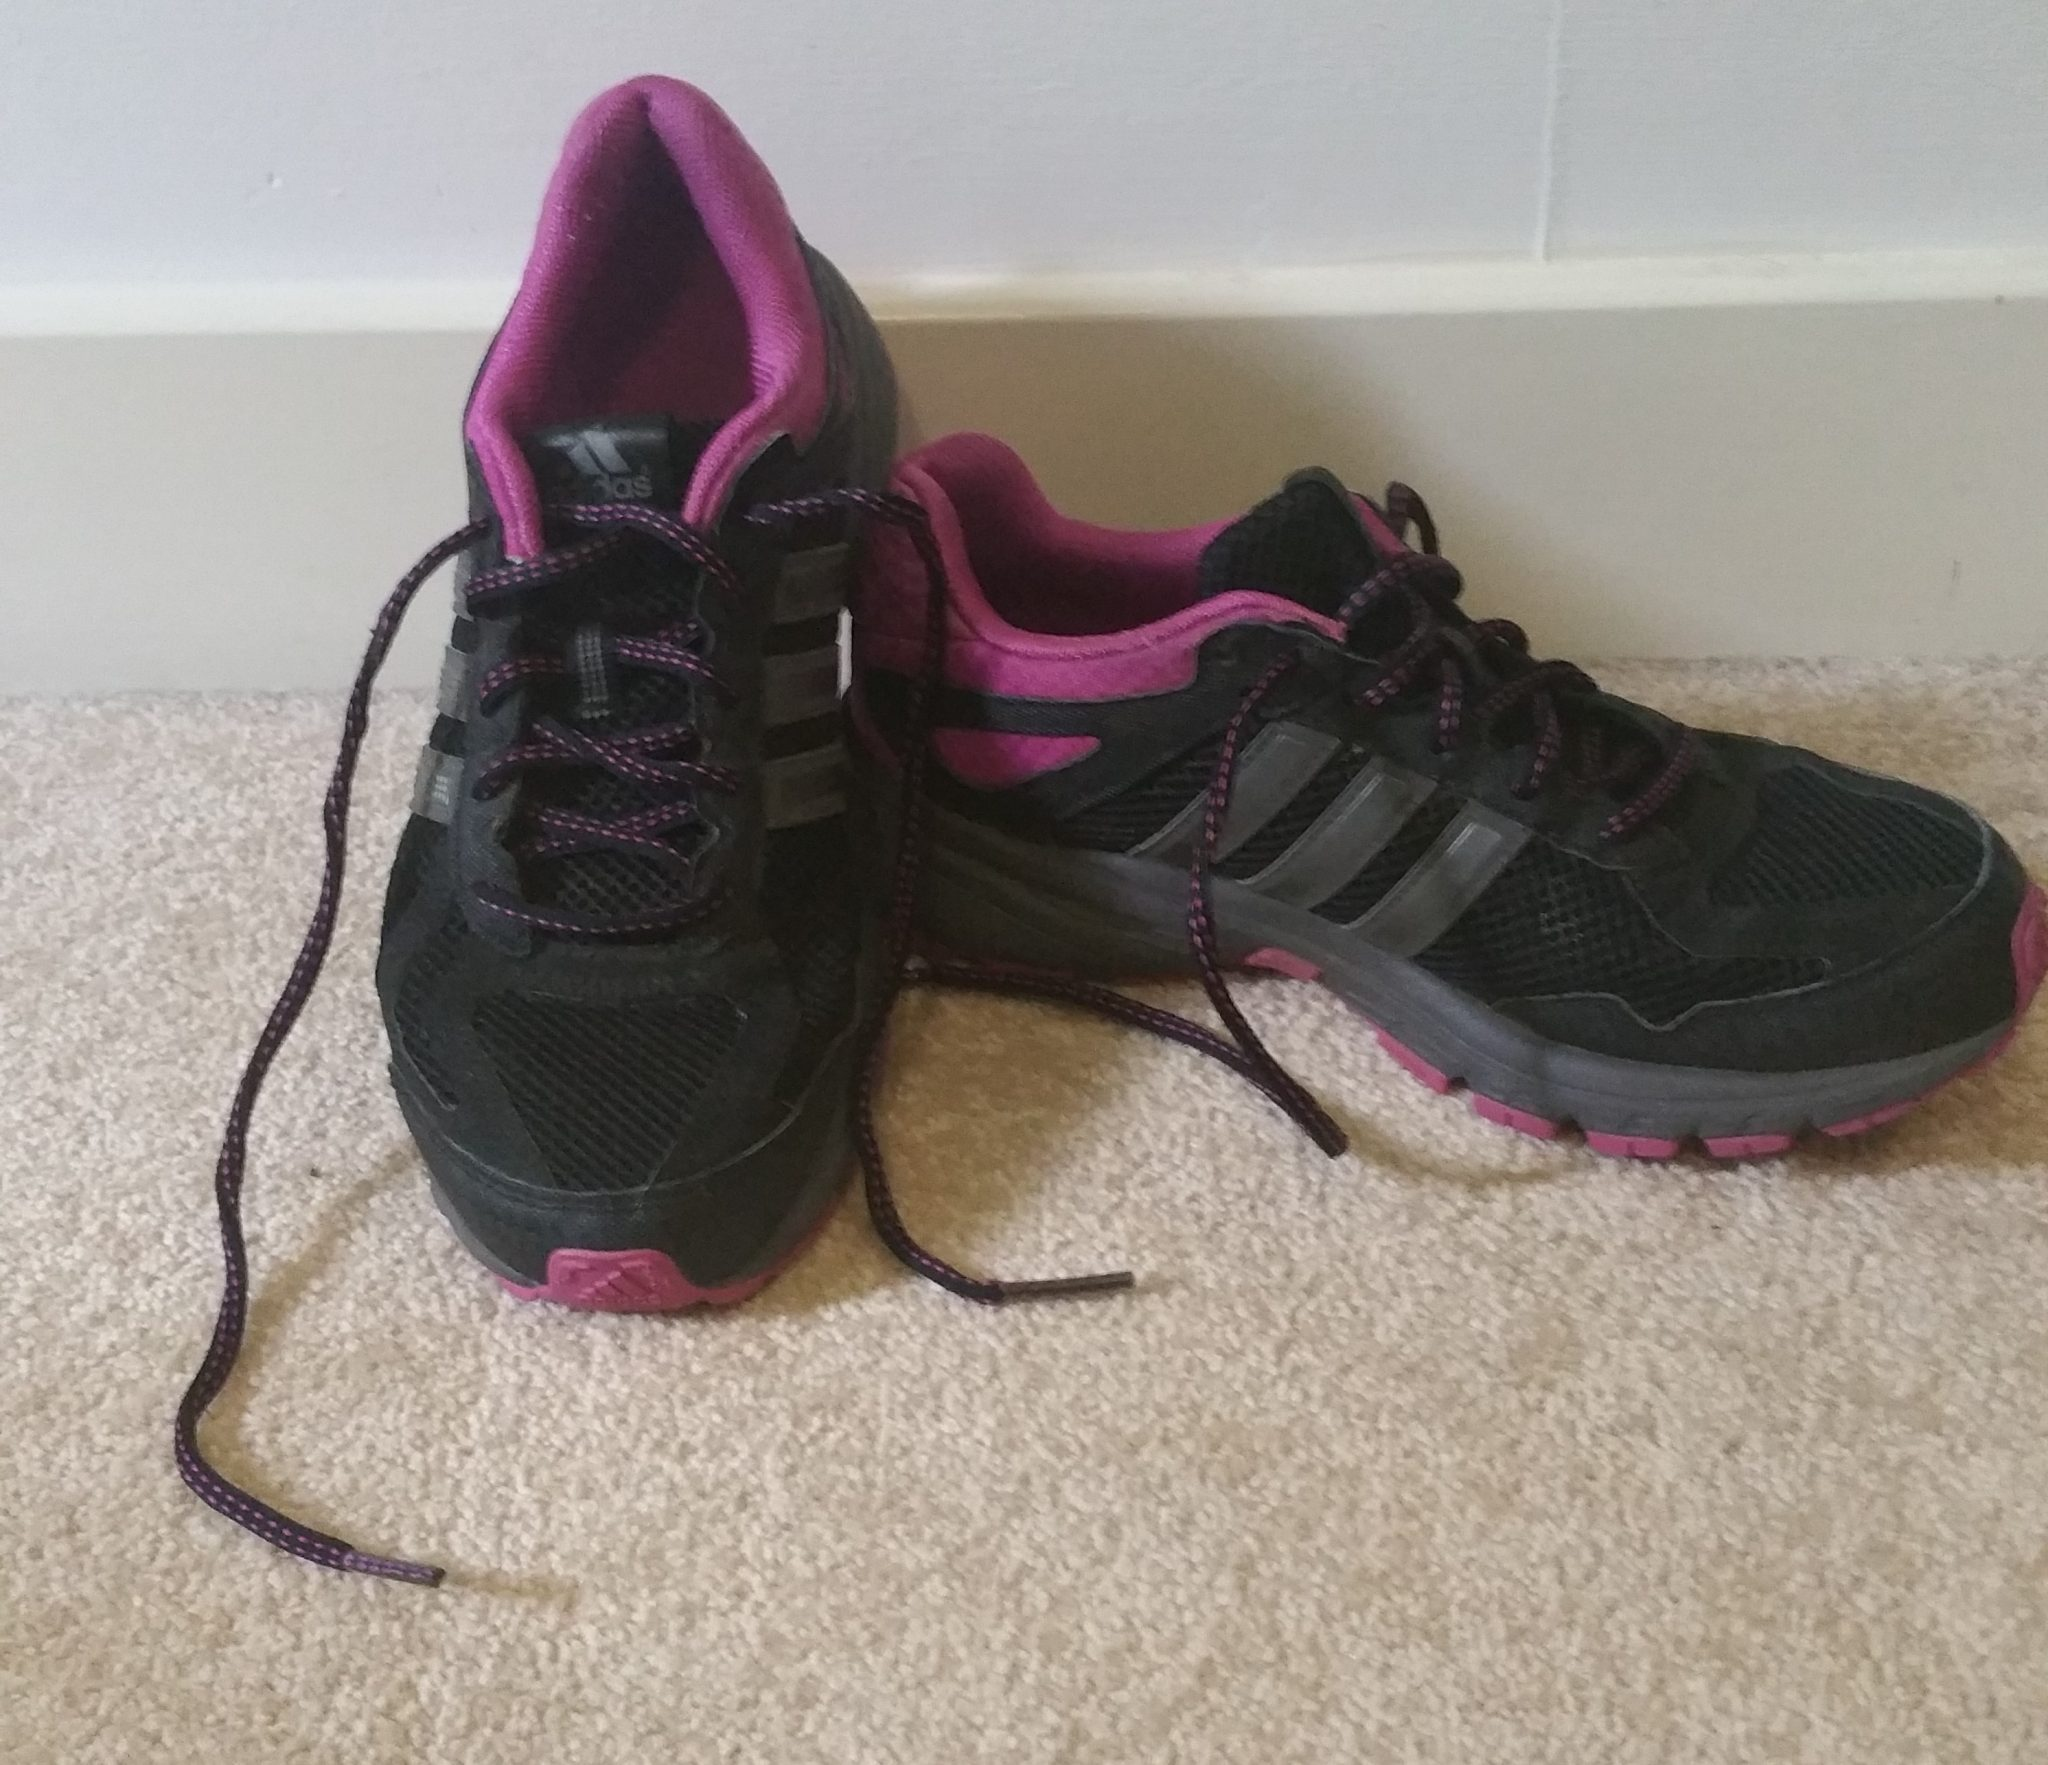 Adidas Duramo 5 Trail Shoes Review The Mummy Toolbox